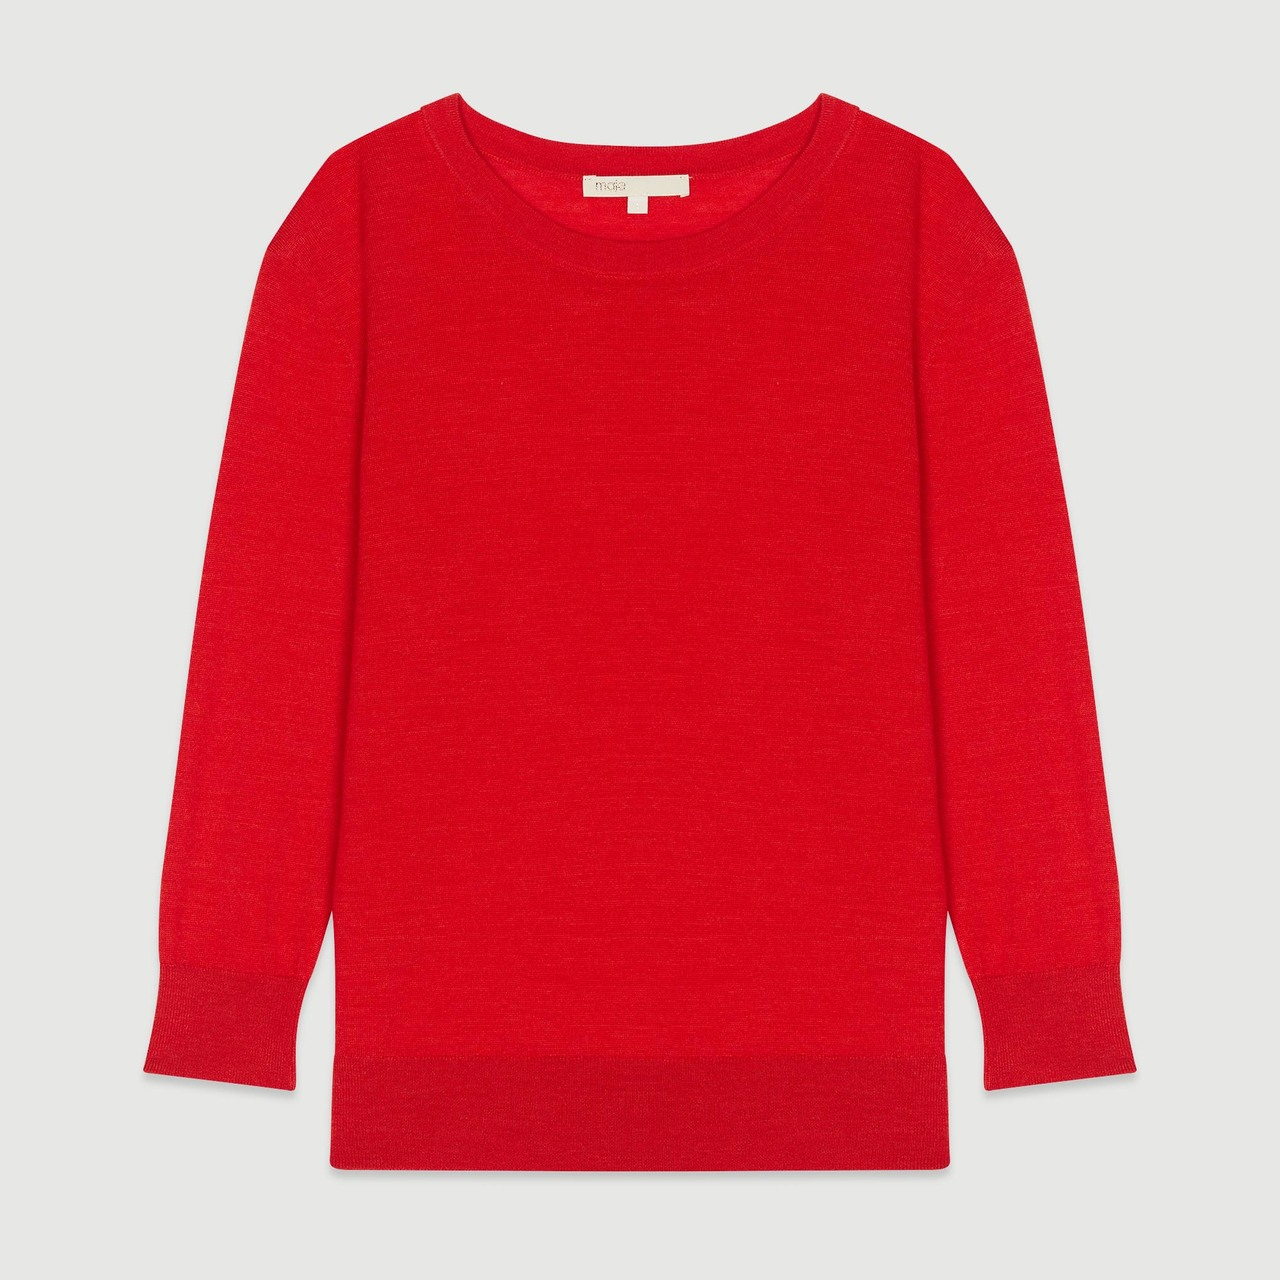 Round Collar Sweater - Red